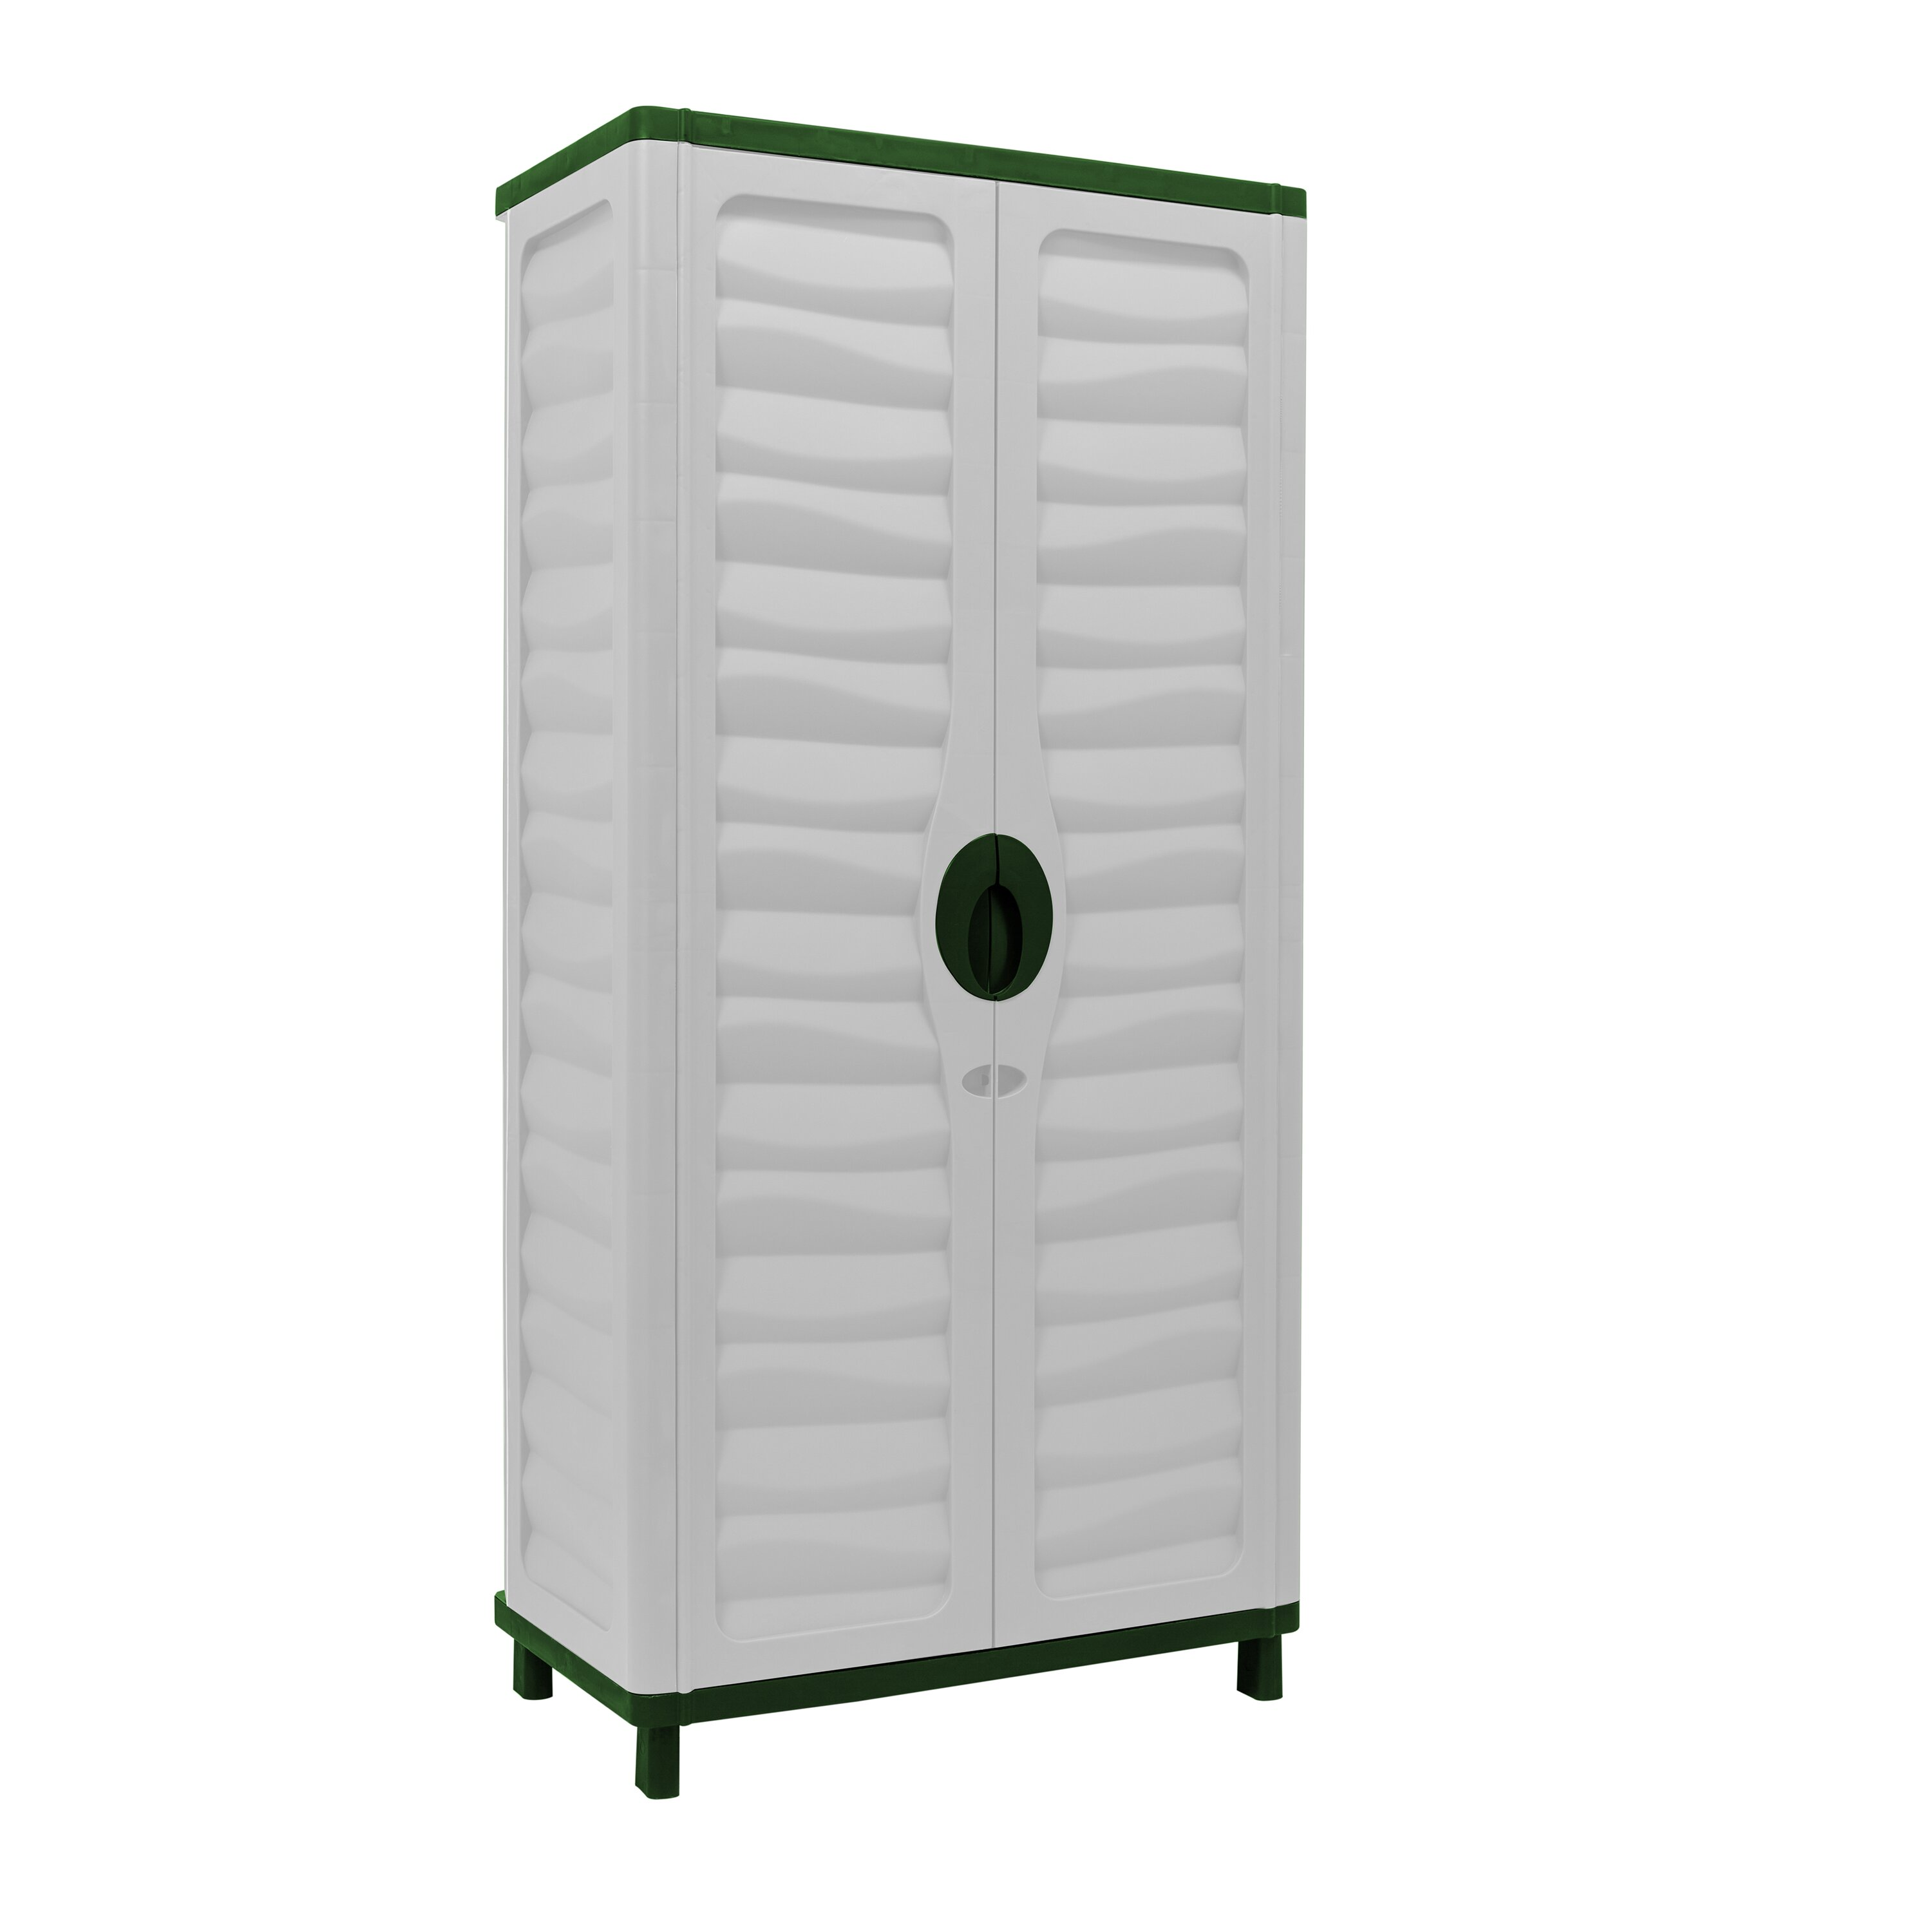 Resin Utility Cabinet Starplast Vertical Partition 62 H X 293 W X 171 D Storage